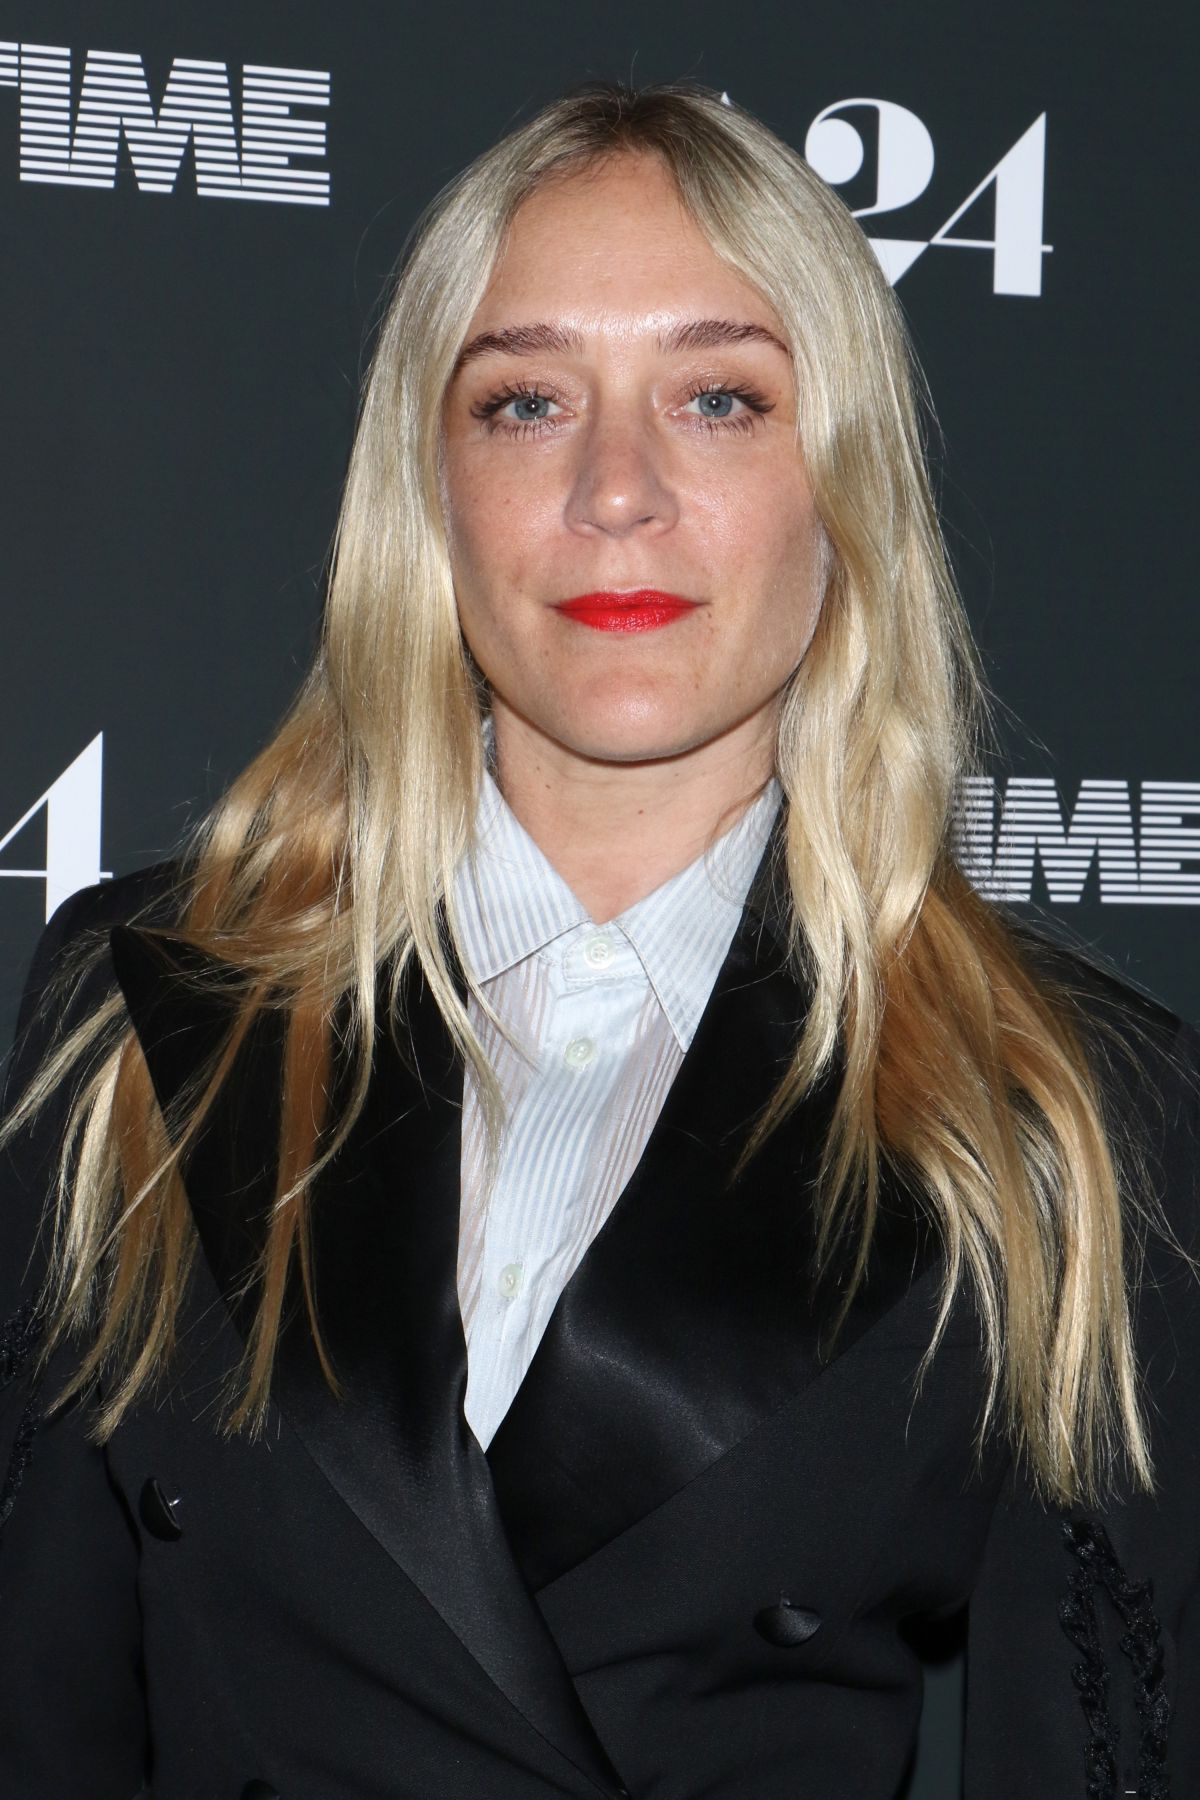 CHLOE SEVIGNY at Good Time Premiere in New York 08/08/2017